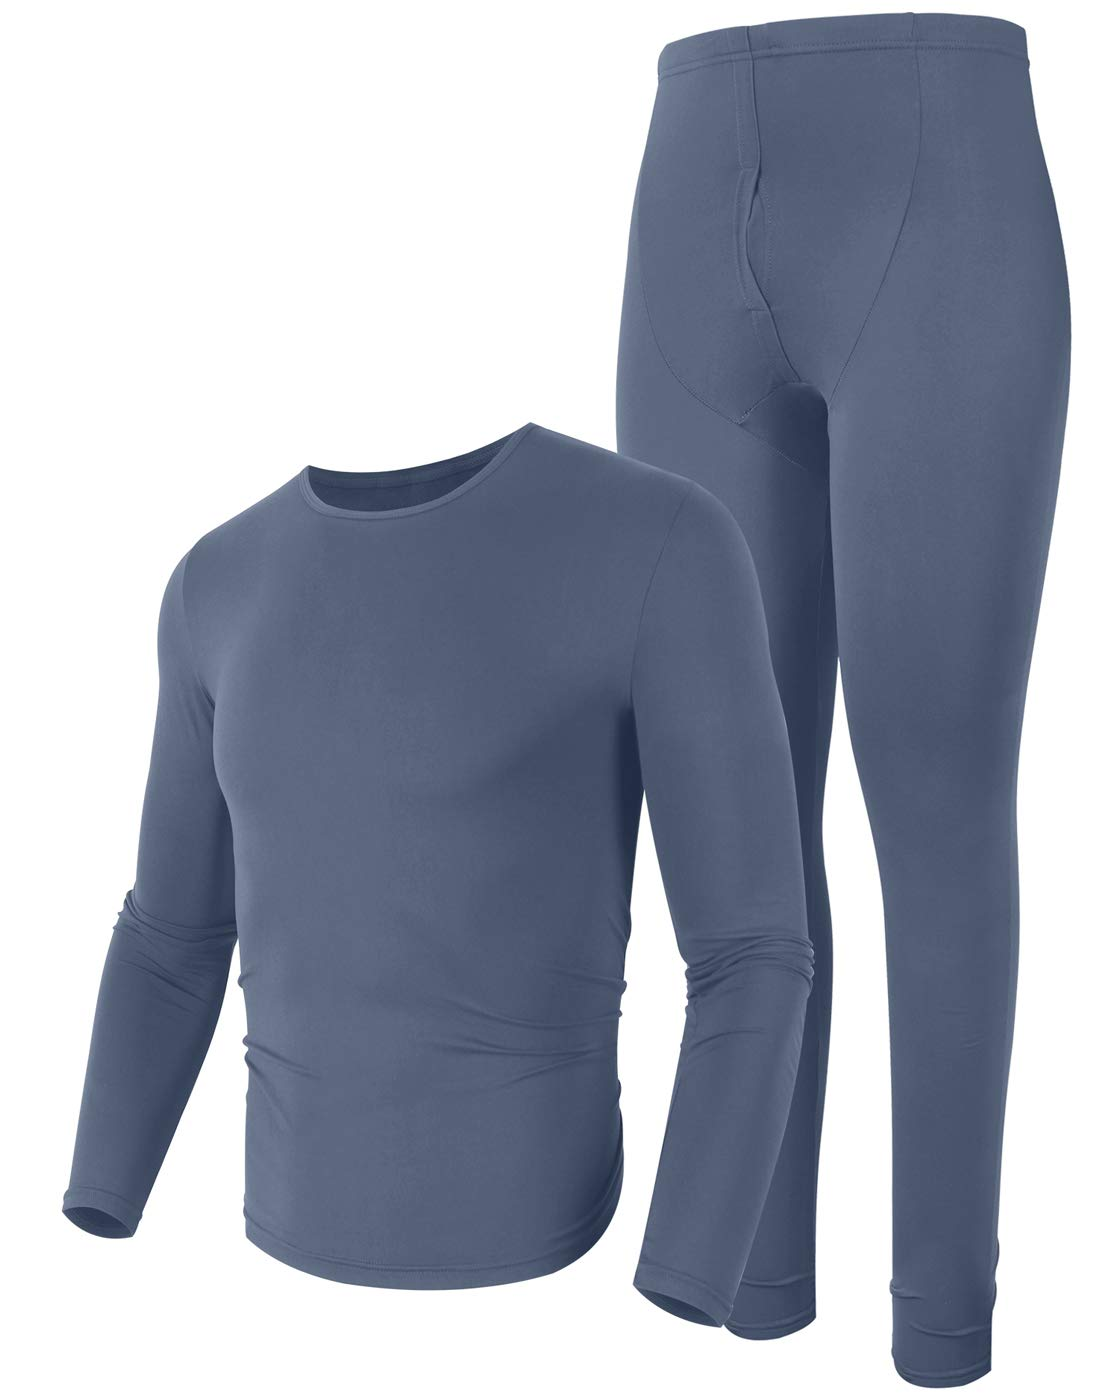 poriff Mens Insulated Thermal Midweight Thermal Underwear Cold Weather Clothes Dark Grey M by poriff